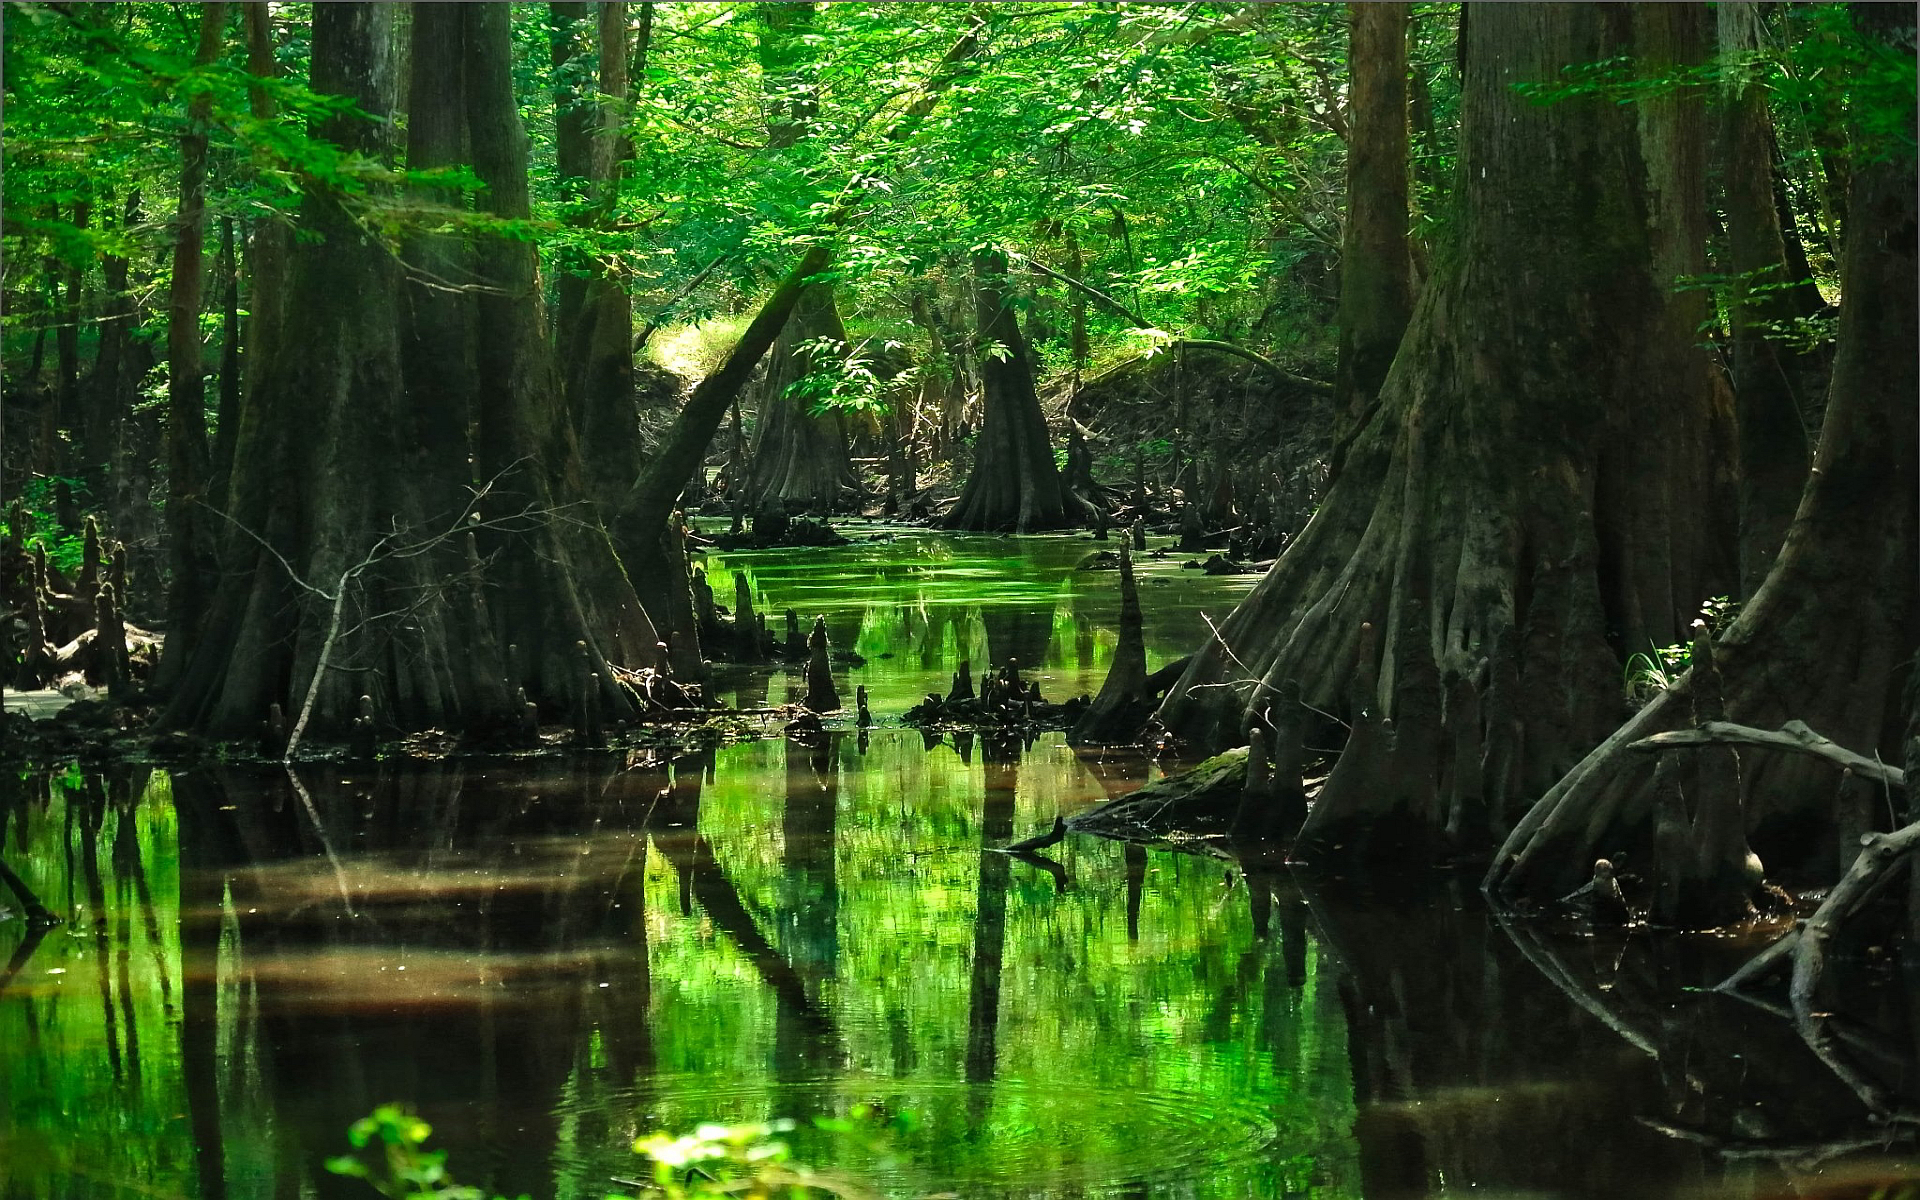 deep forest wallpaper swamp   HD Desktop Wallpapers 4k HD 1920x1200